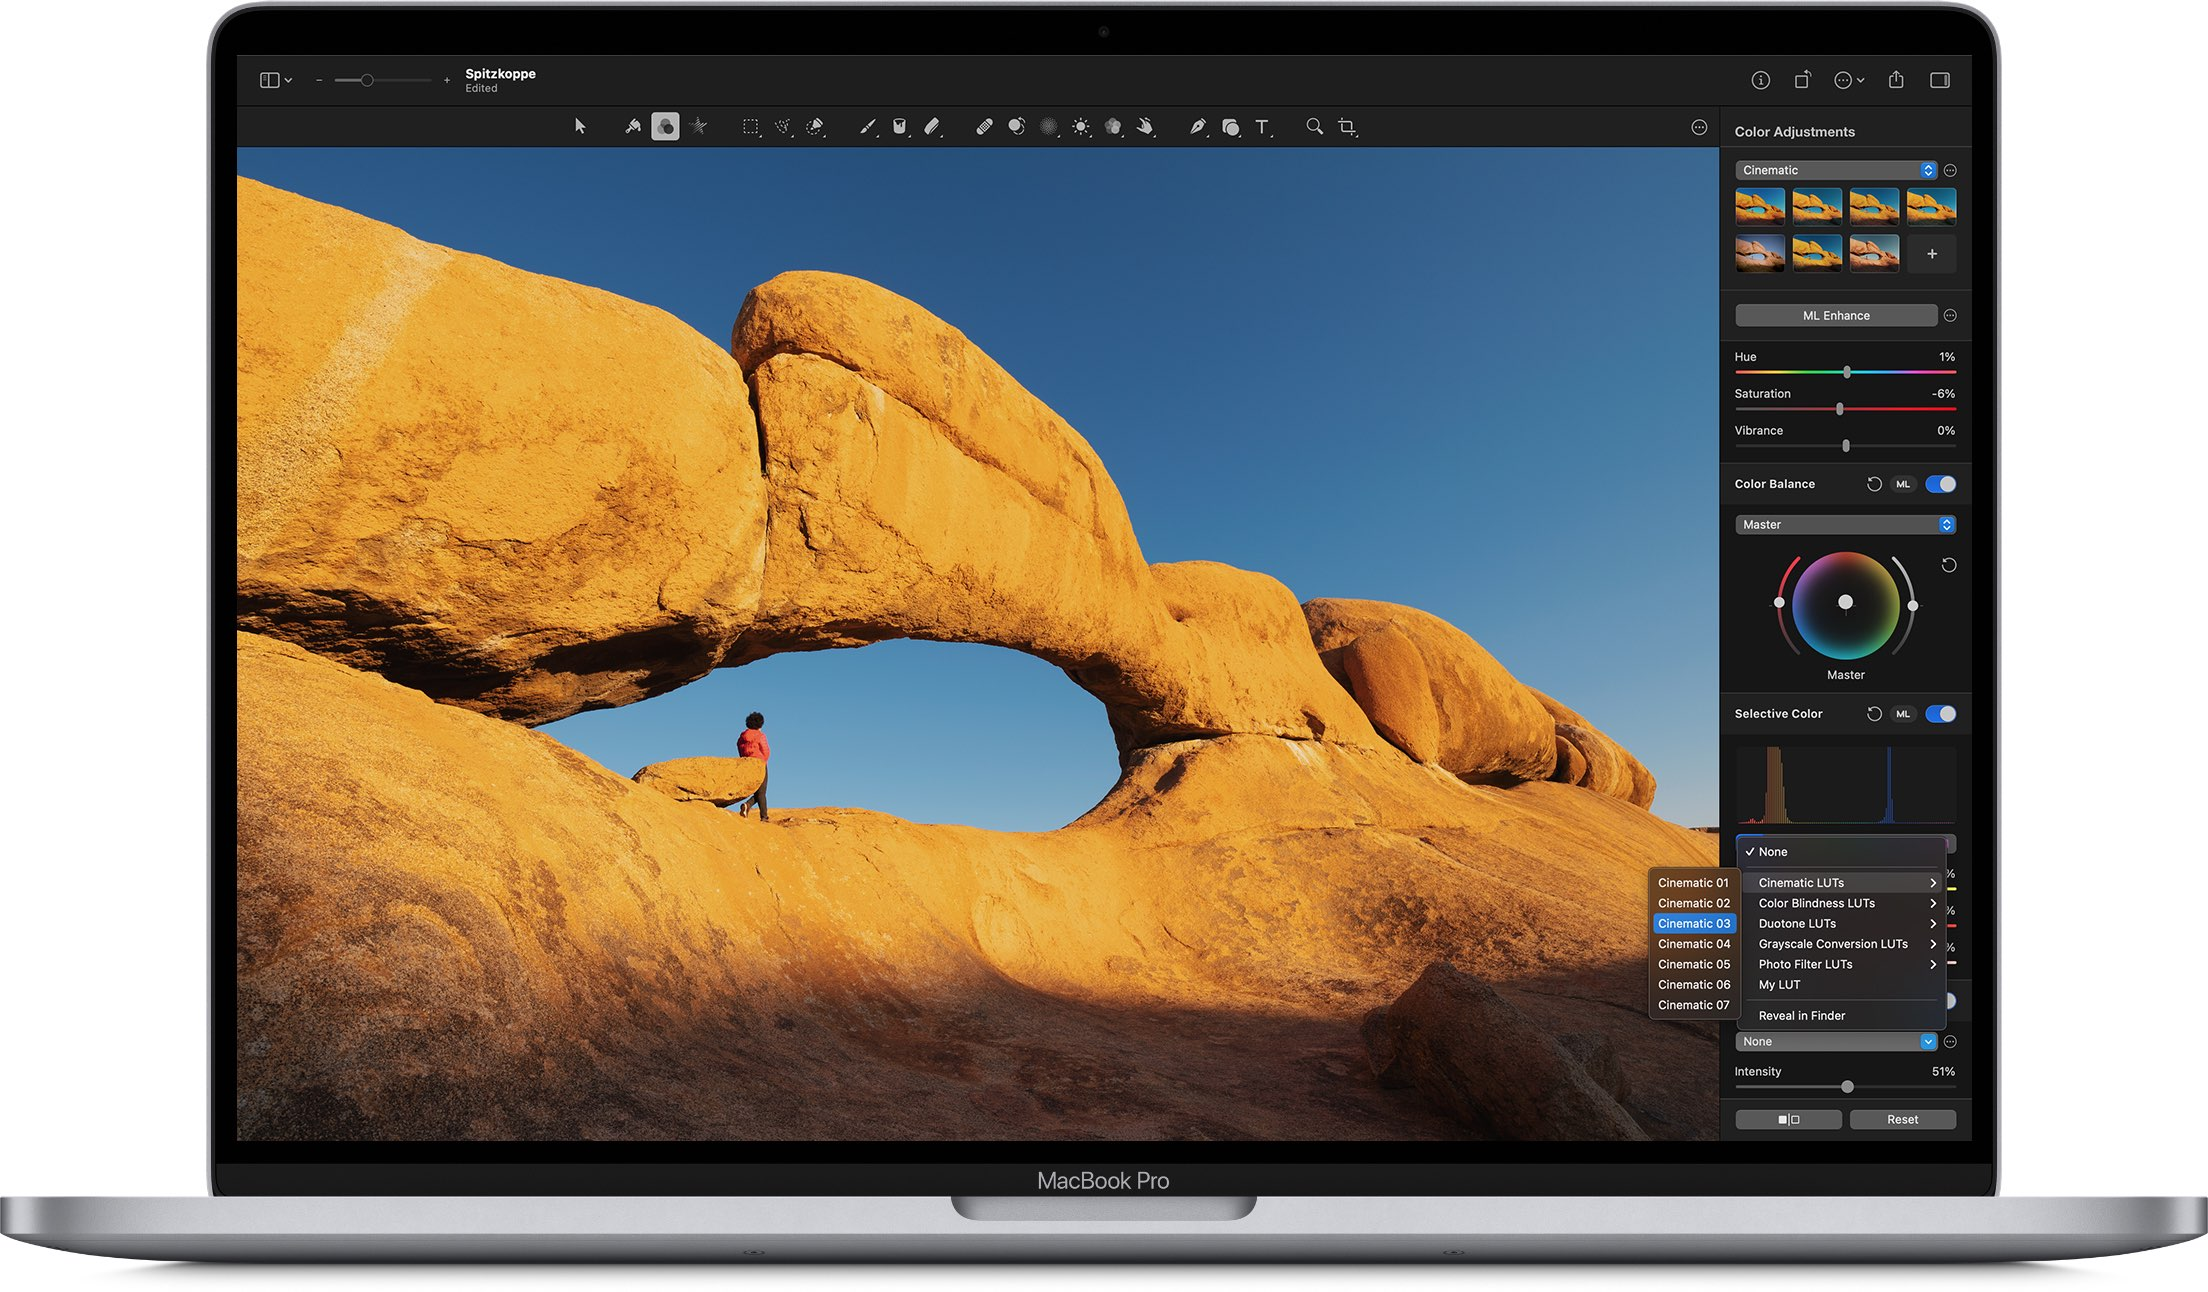 A Mac screenshot displaying LUT color adjustments in the Pixelmator Pro image editor